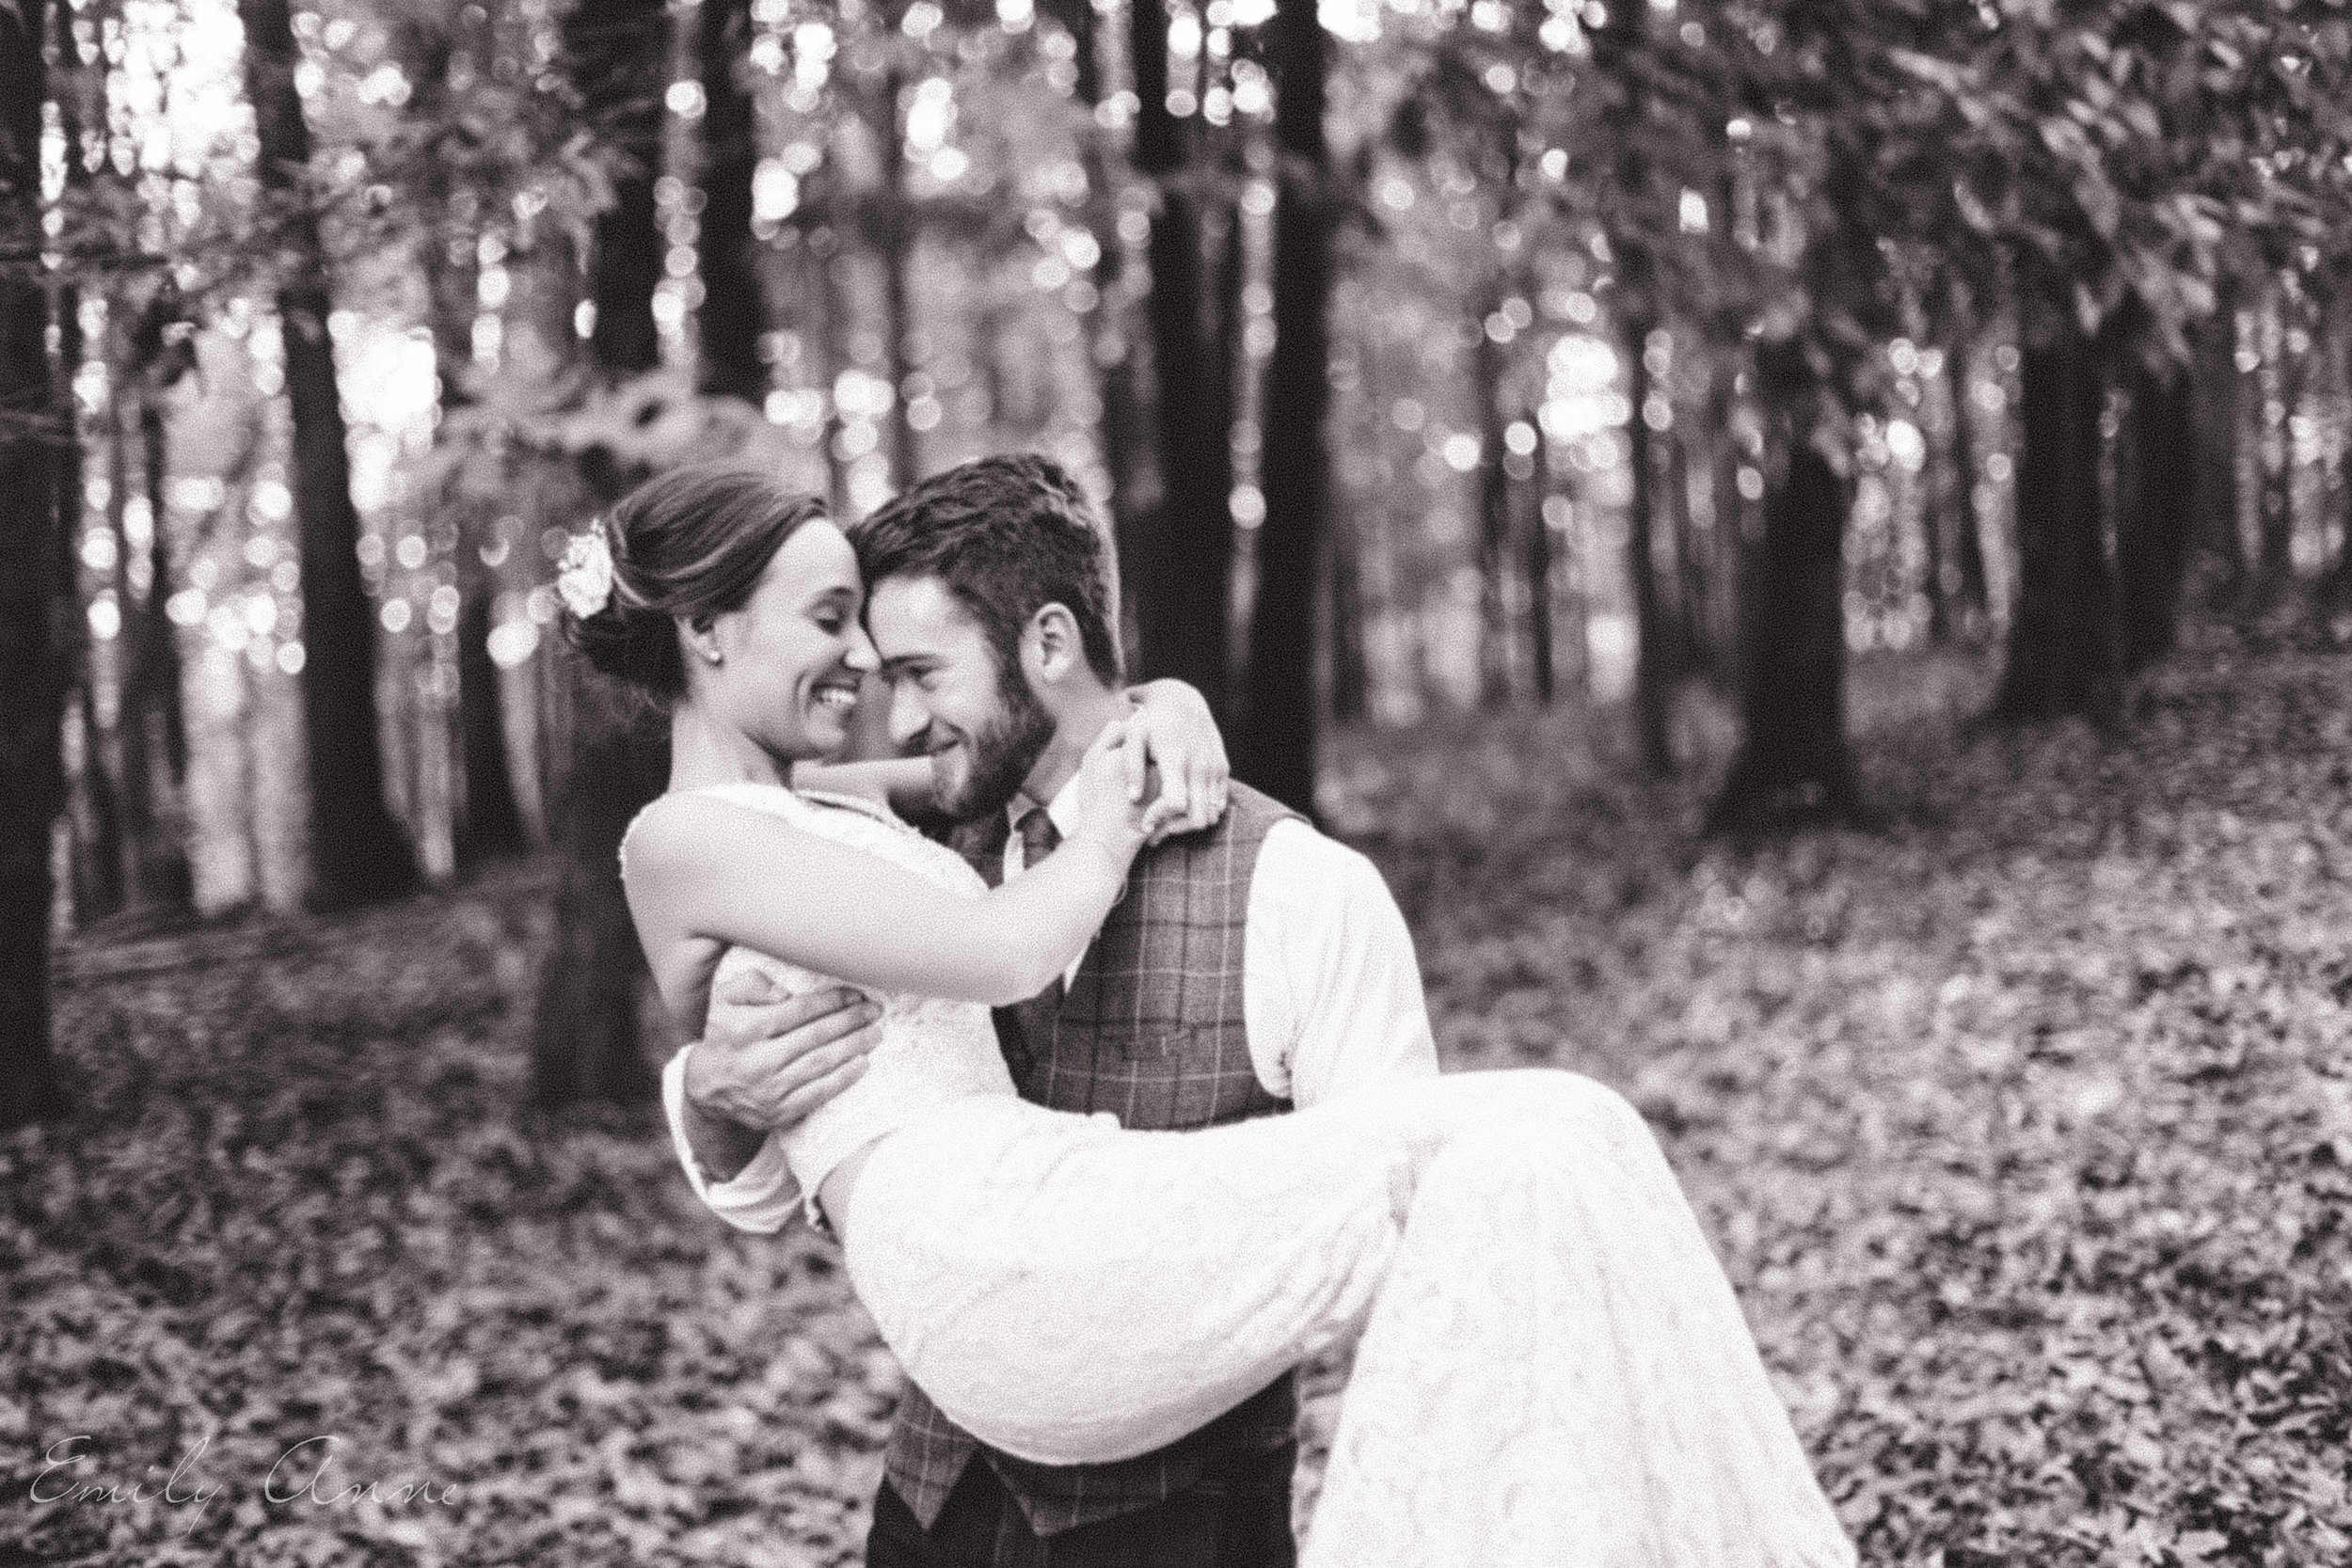 wedding photographer in nashville emily anne shoots the best most candid moments of two lovebirds on camera, capturing natural and raw moments